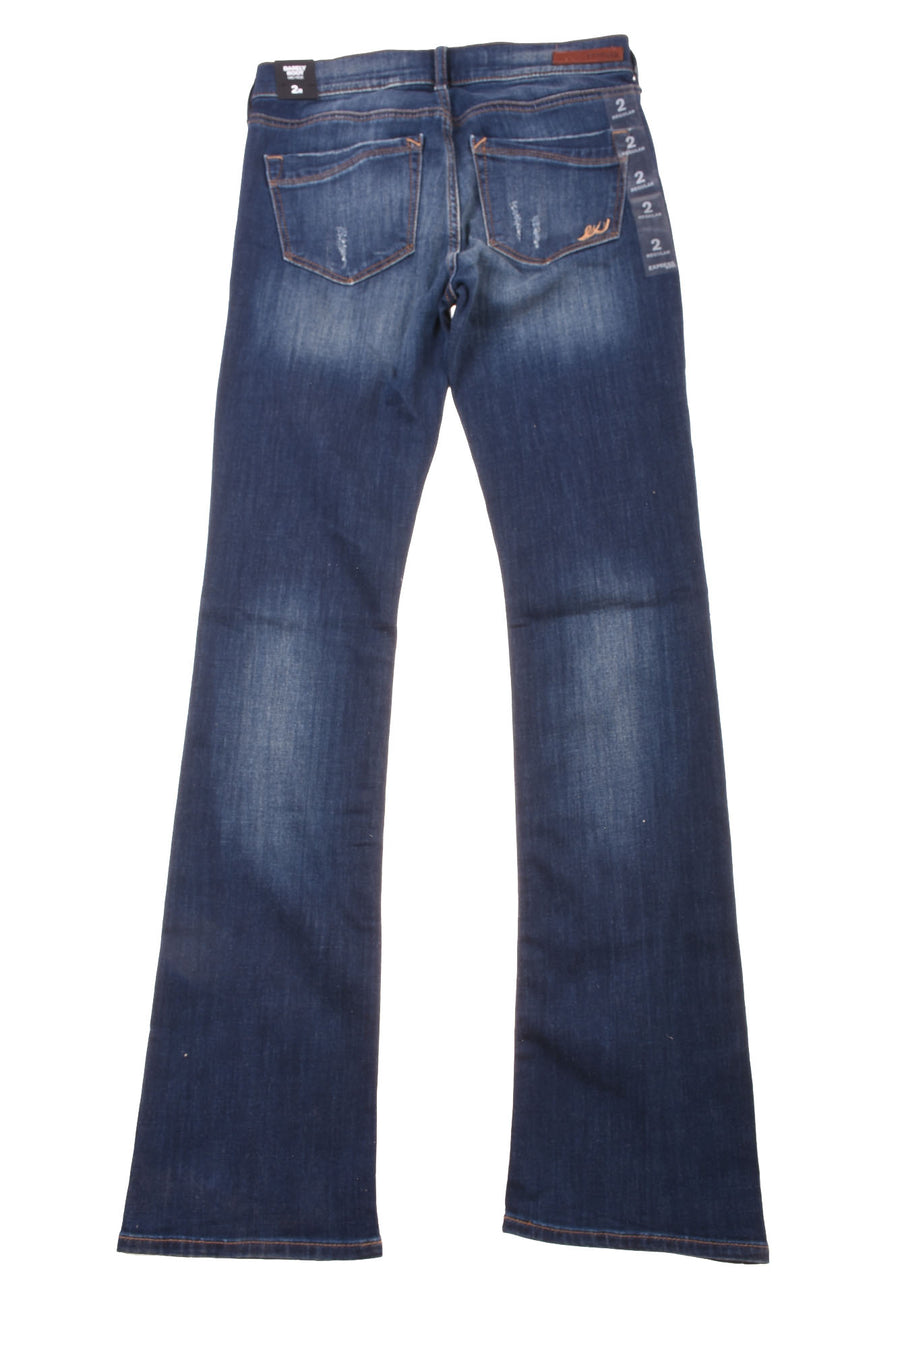 NEW Express Women's Jeans 2 Blue